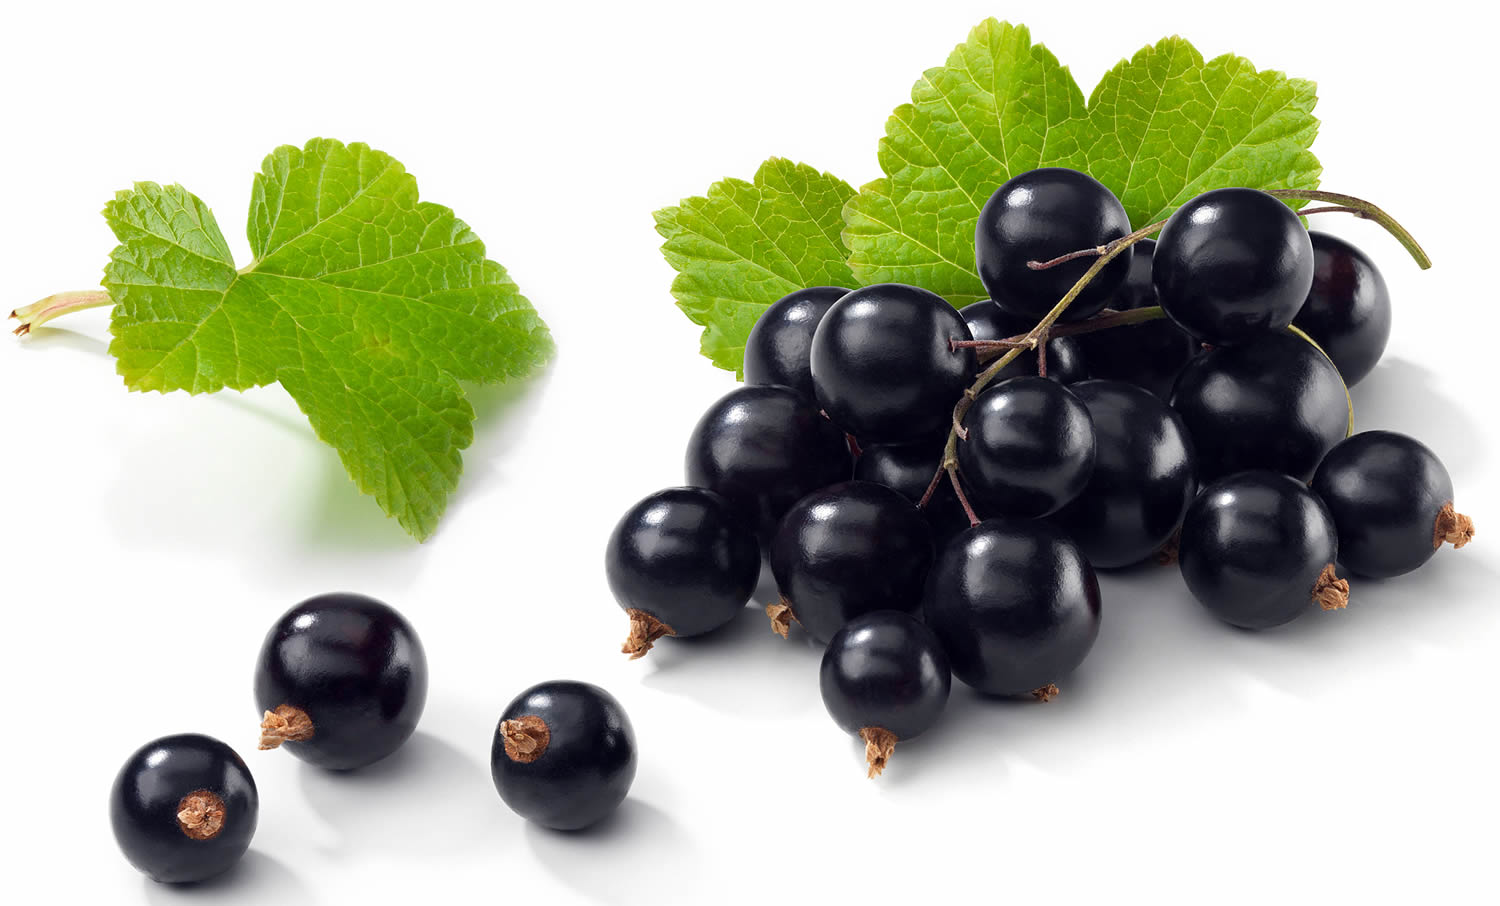 The benefits and harms of black currant for health. What are the vitamins in black currants 59